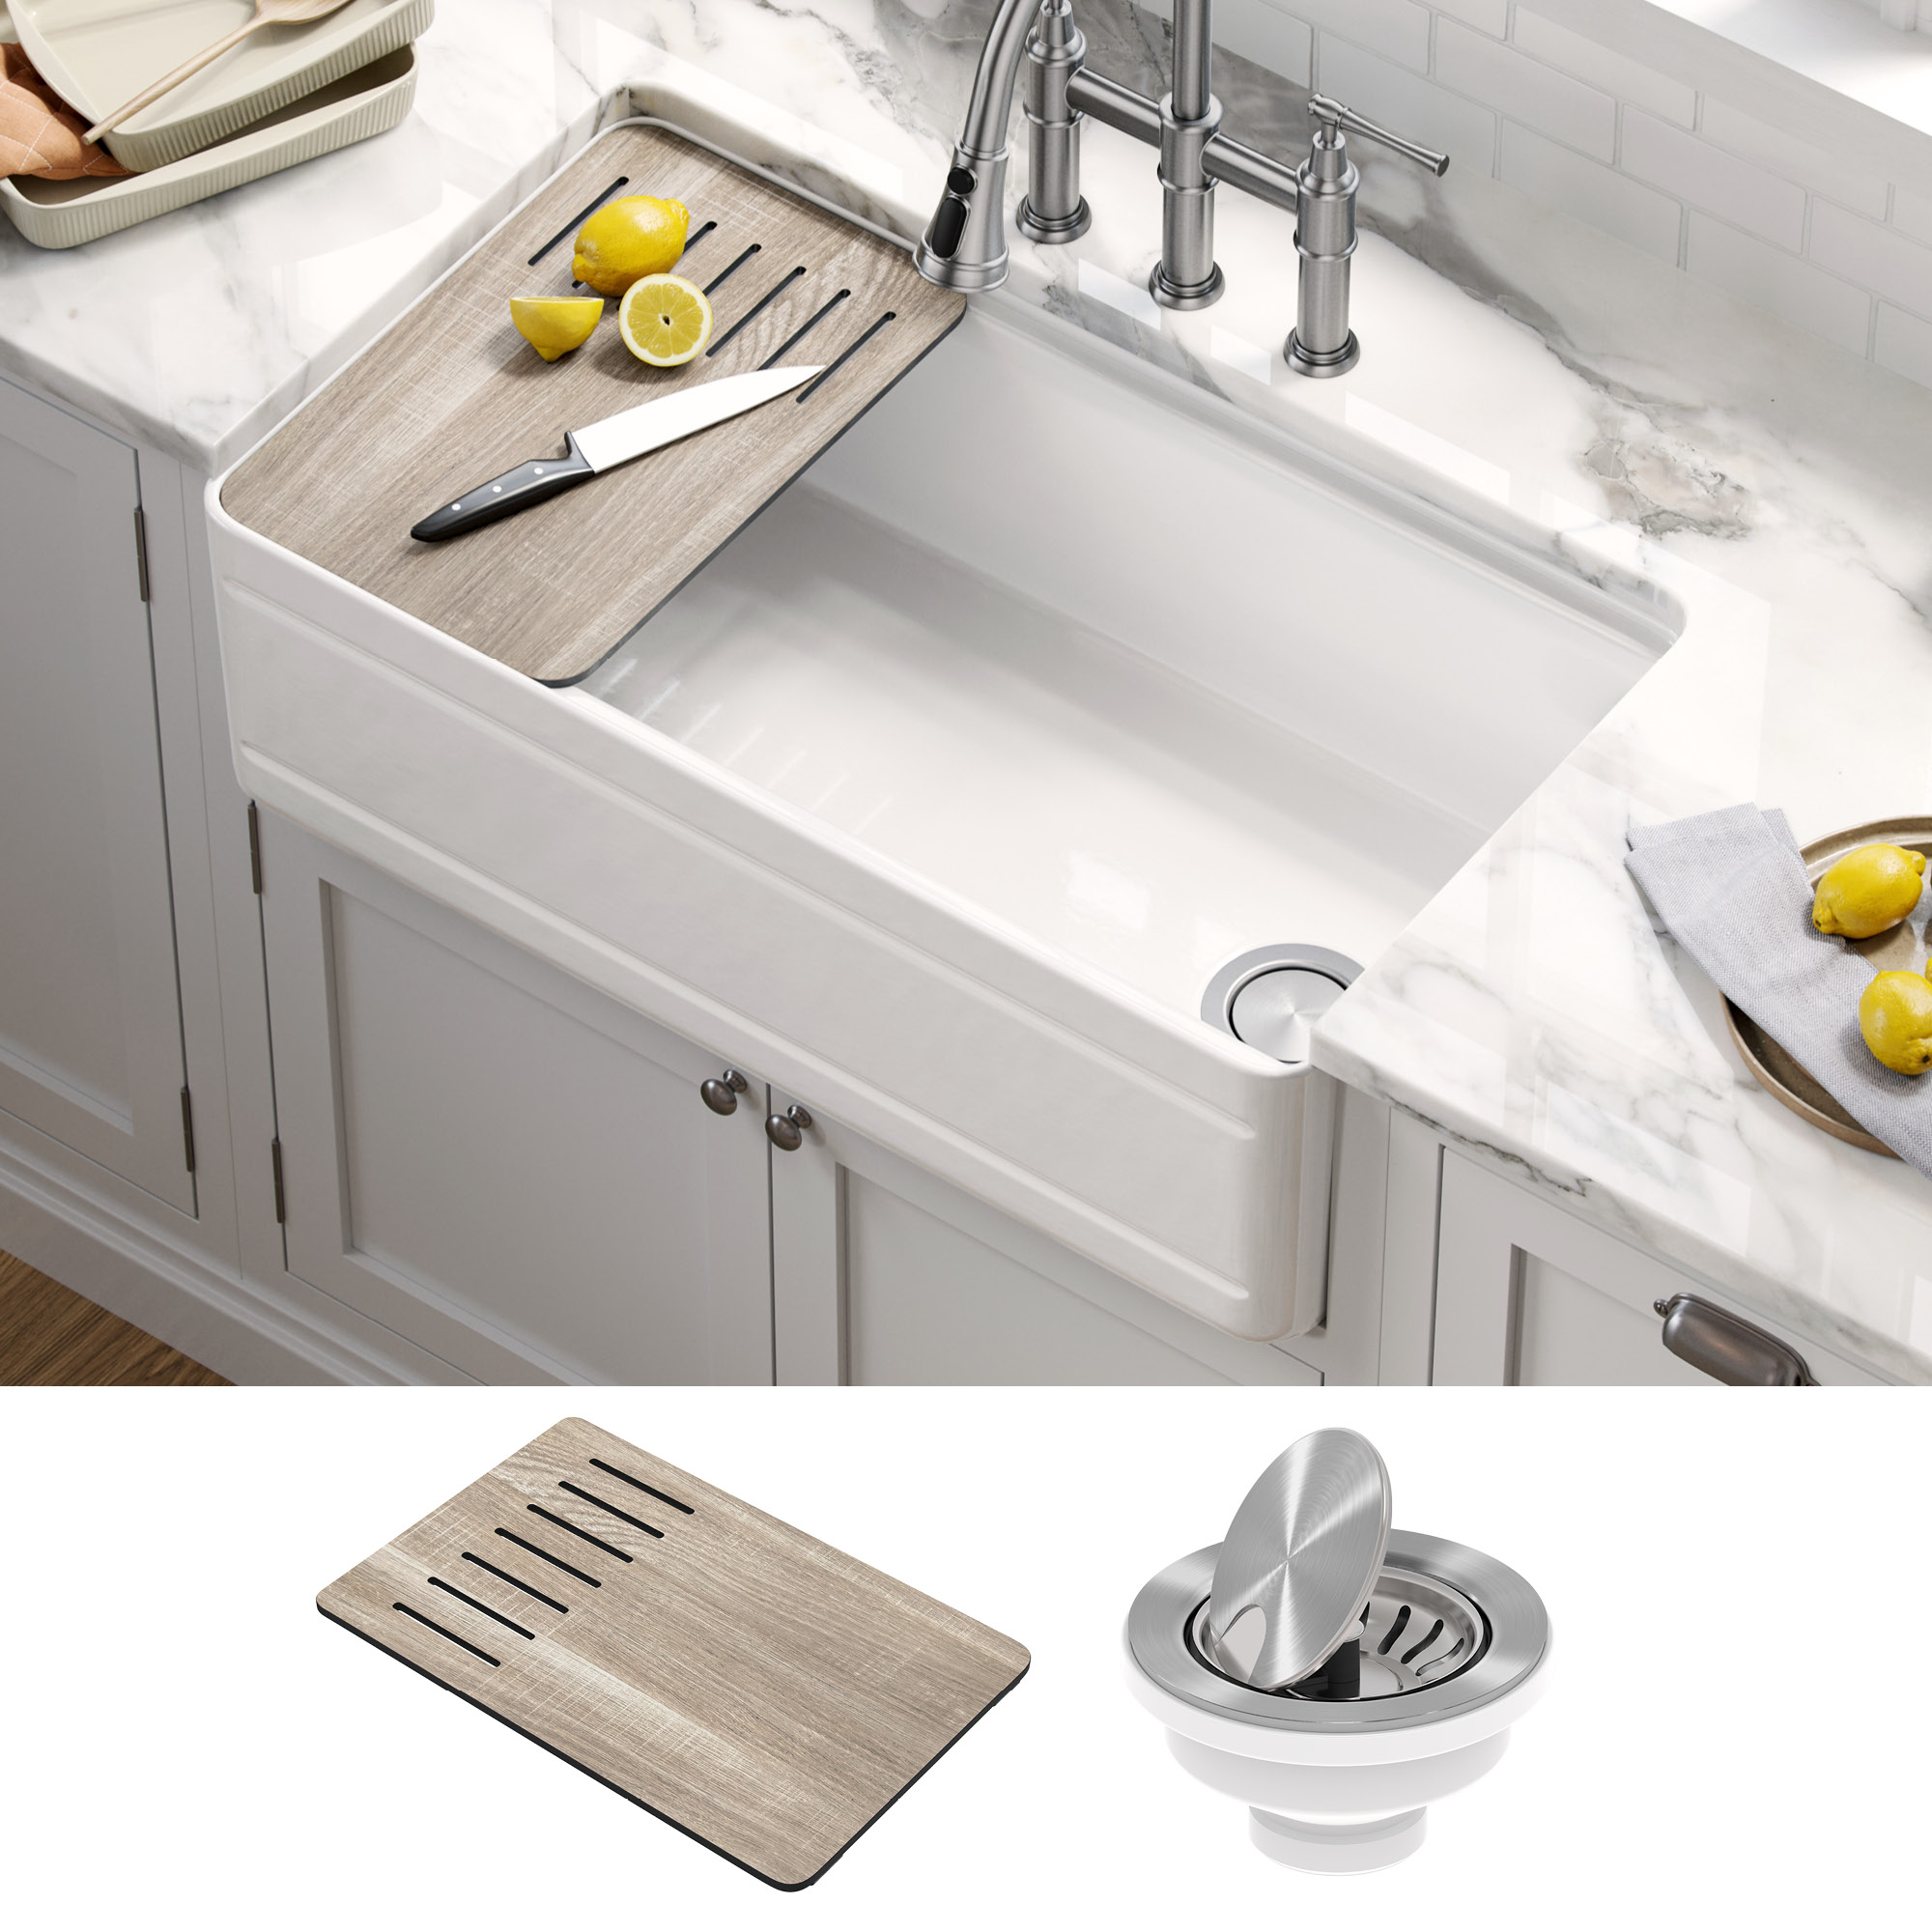 kraus turino workstation 33 inch farmhouse reversible apron front fireclay single bowl kitchen sink with accessories in gloss white